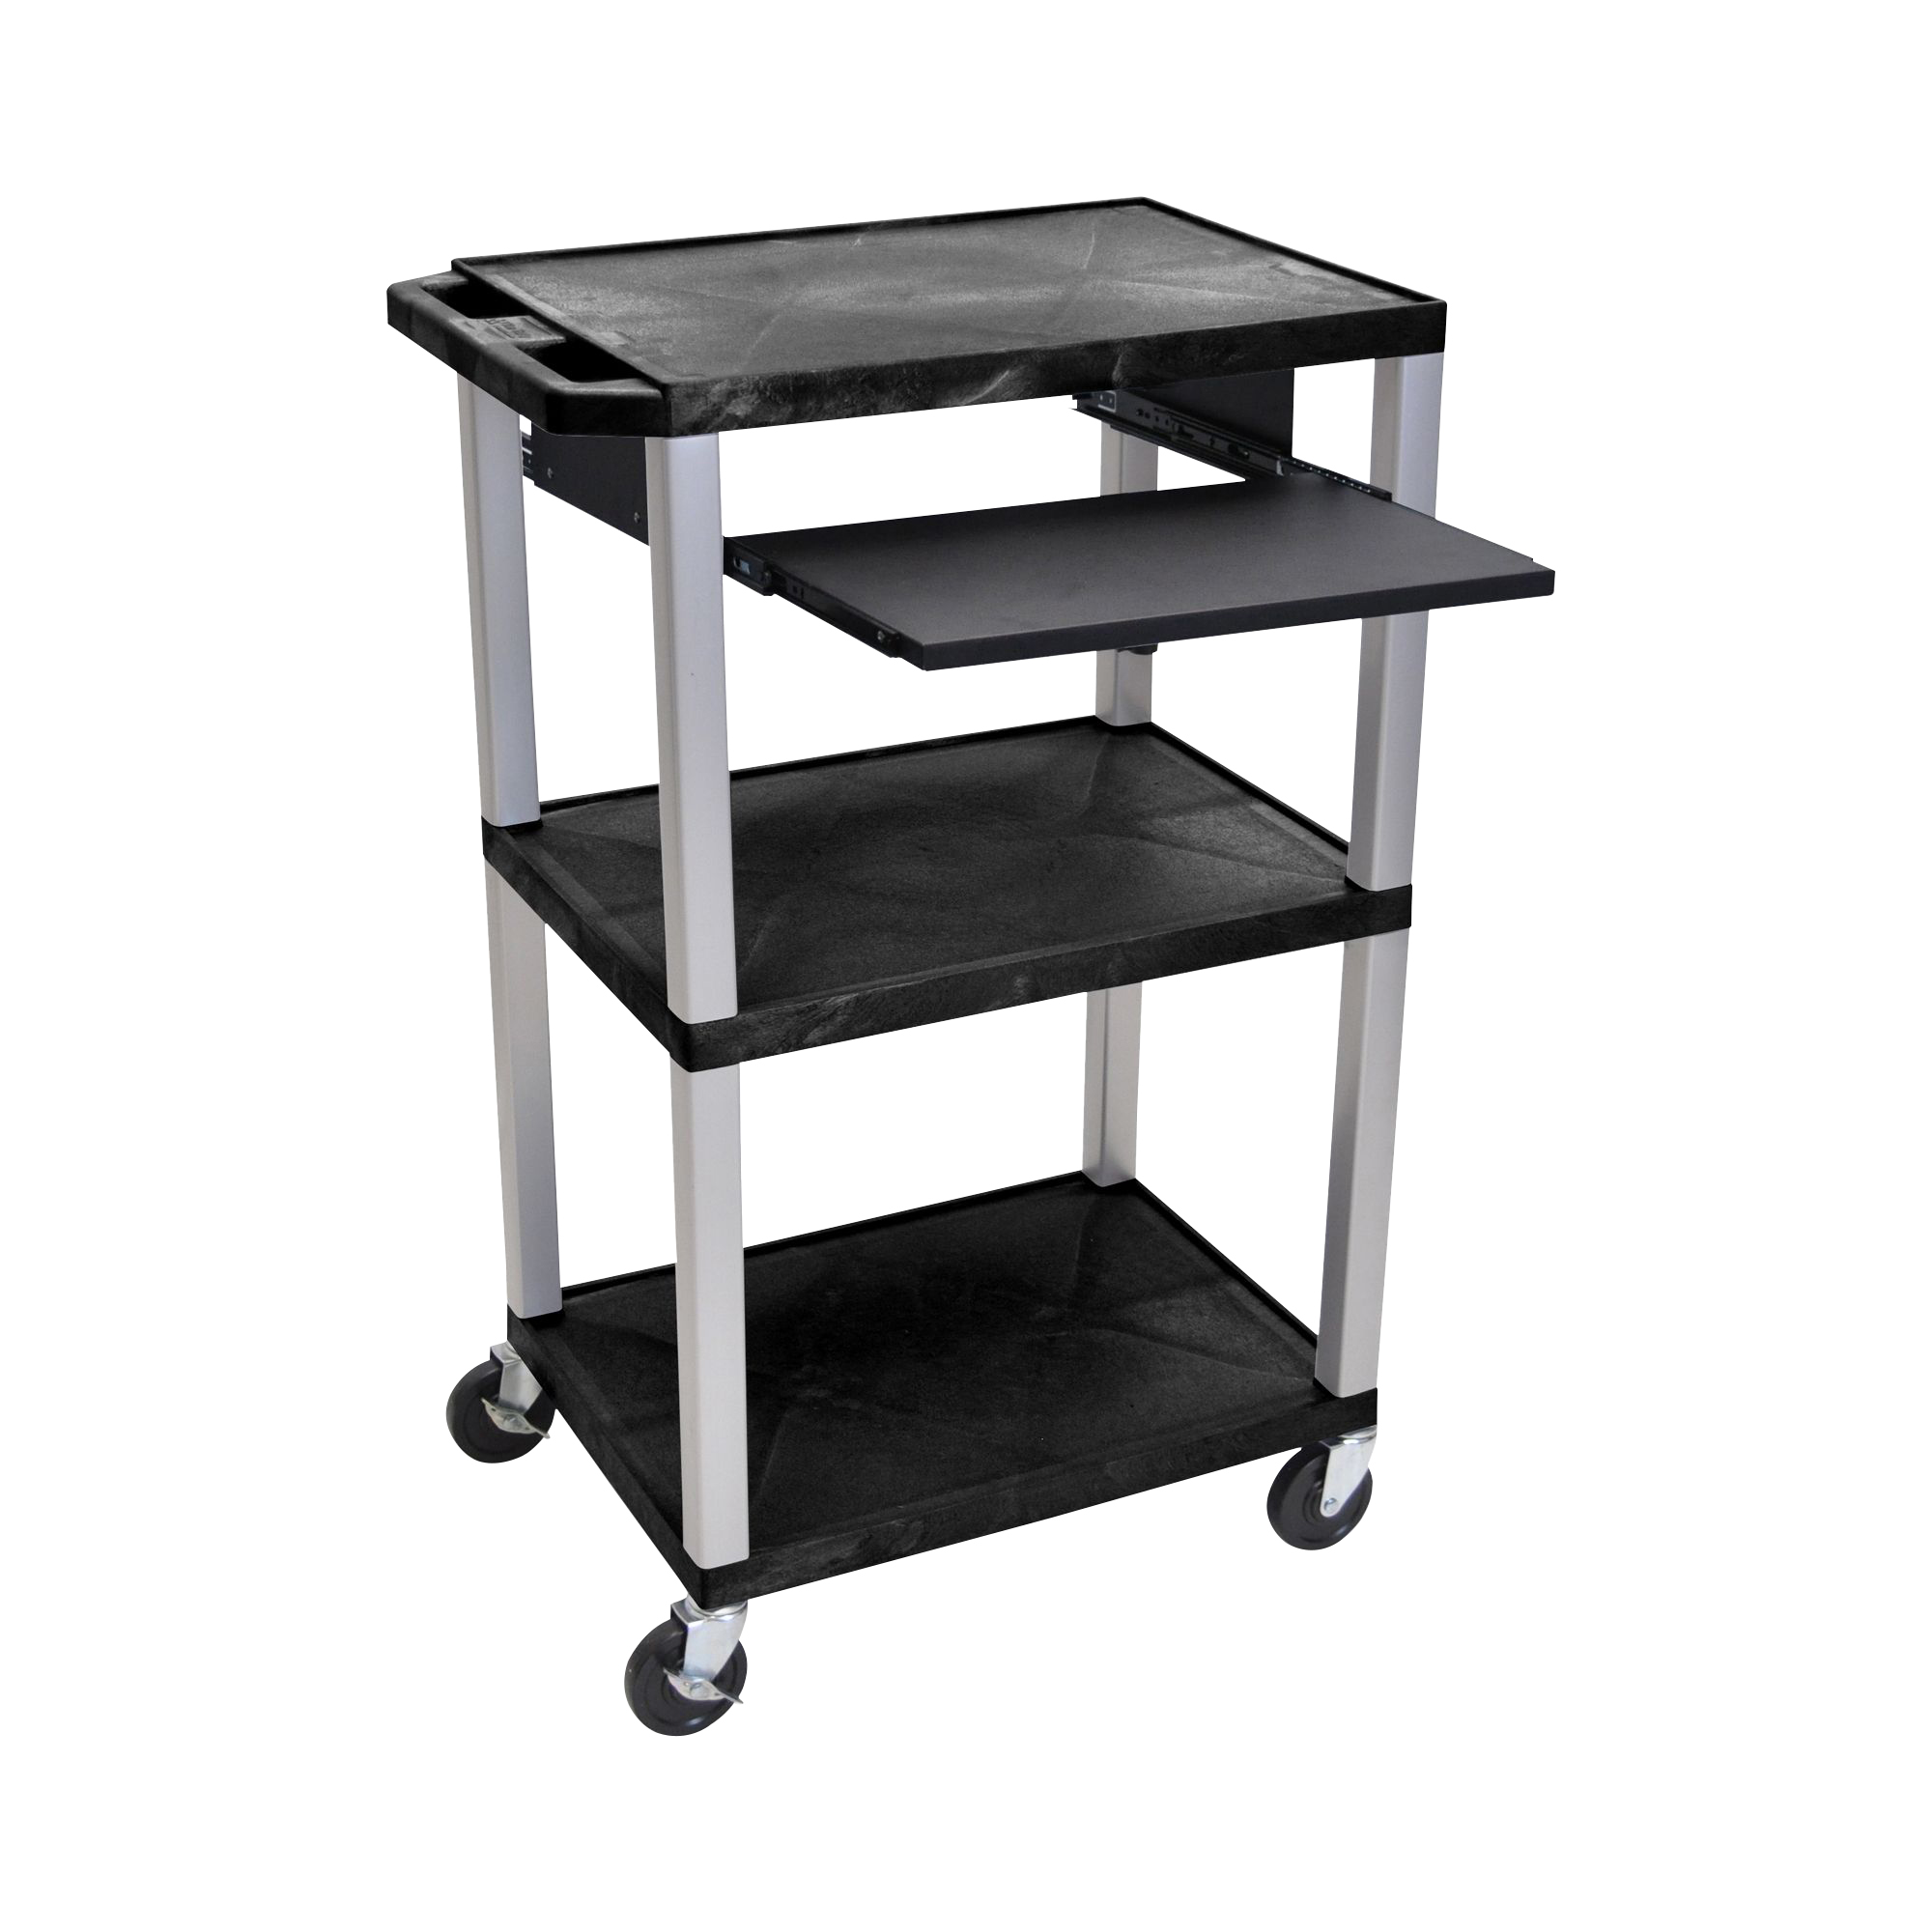 Offex Presentation Cart with Open Shelves and Pull Out Tray Black and Nickel